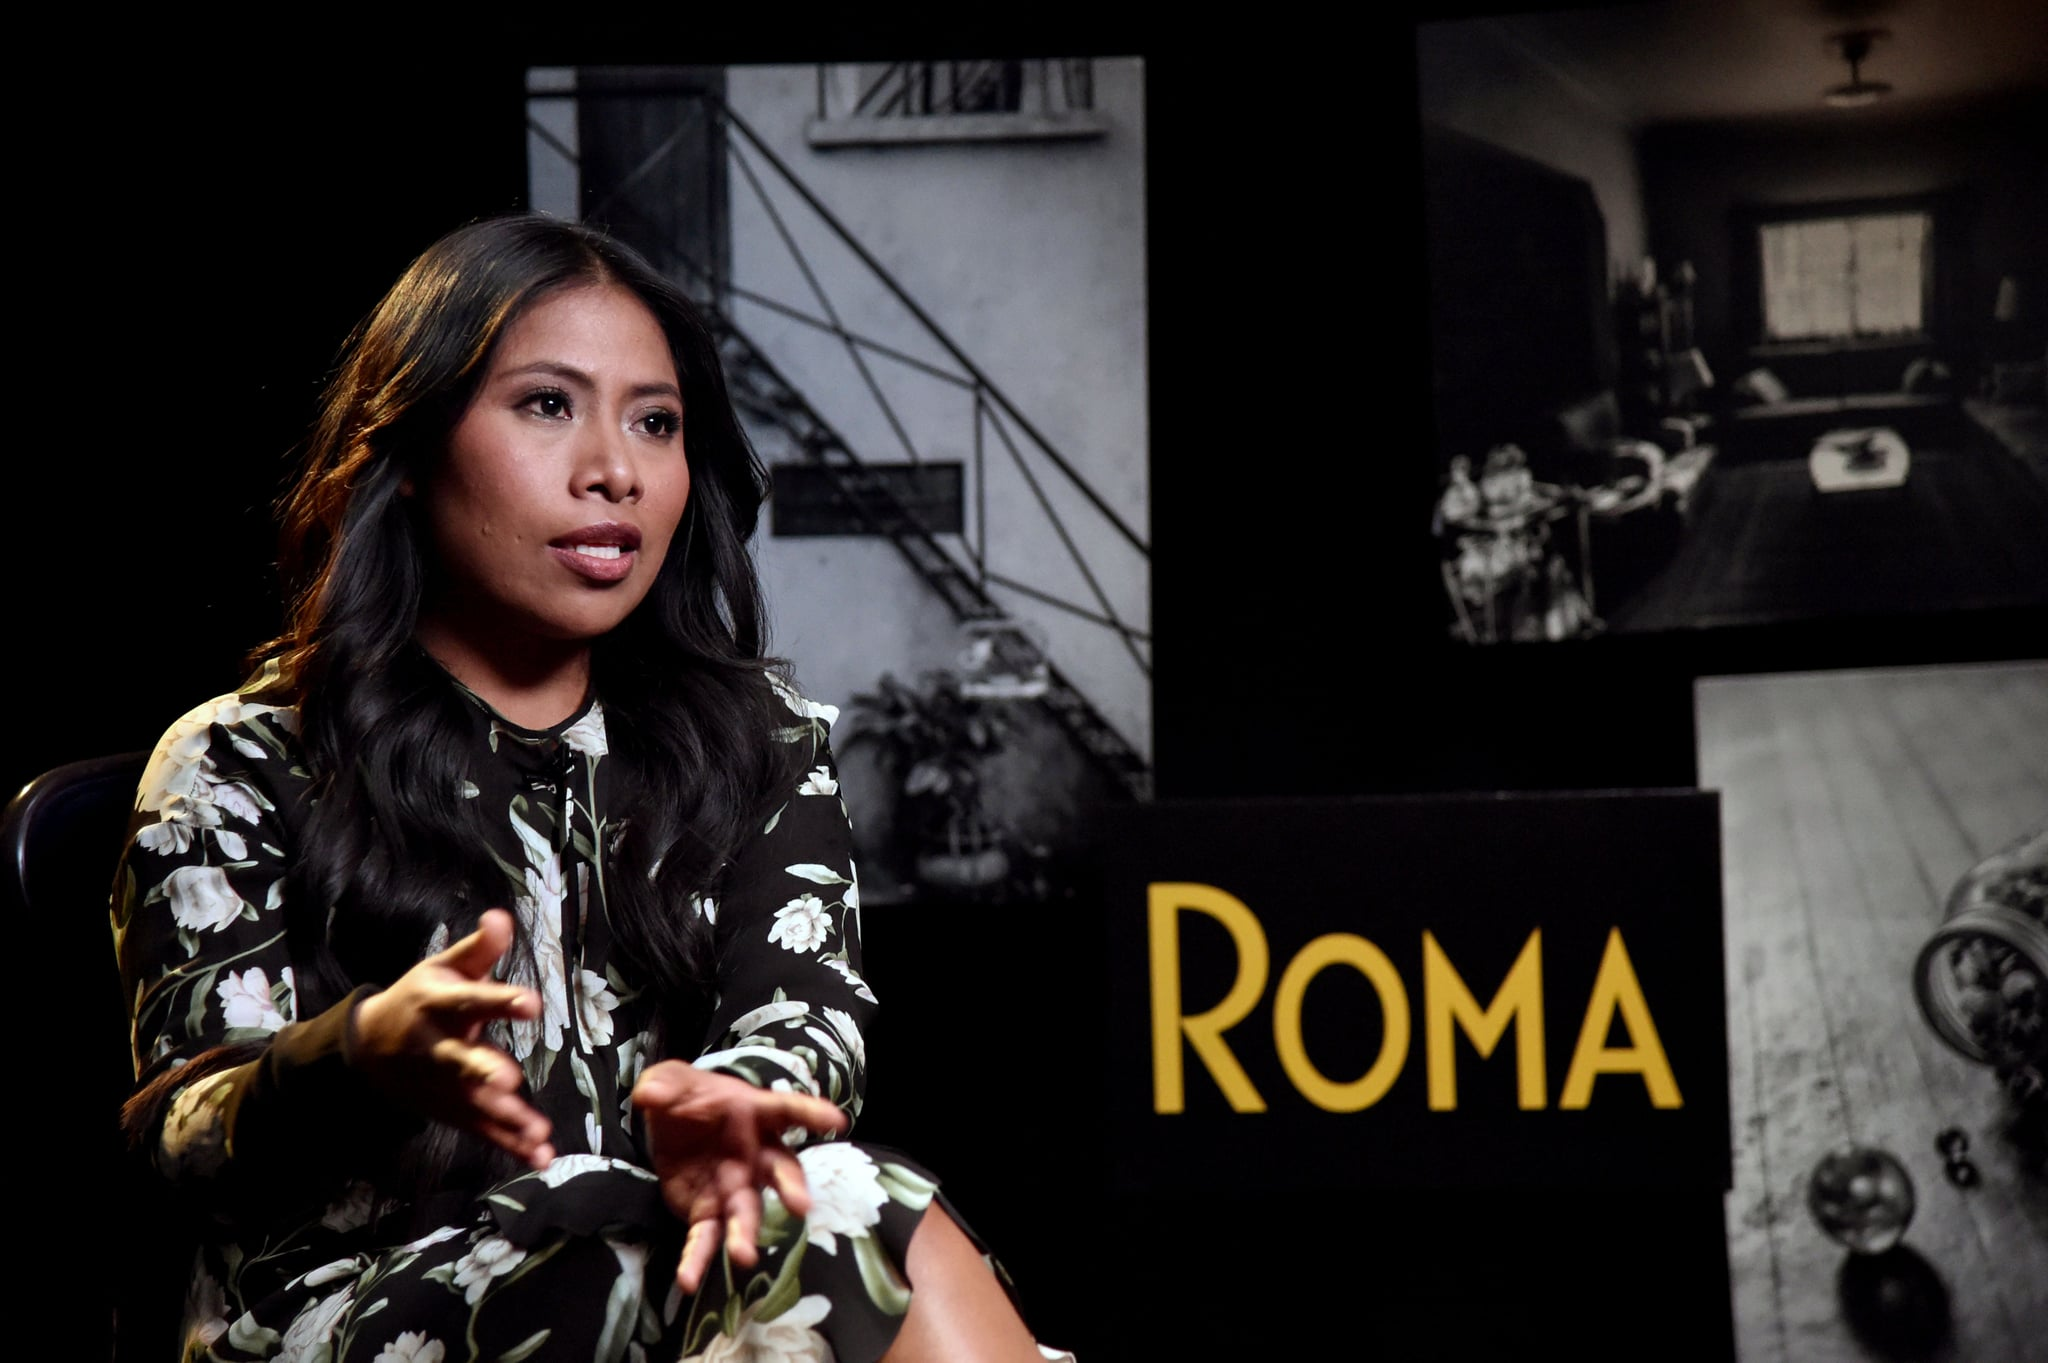 Mexican actress Yalitza Aparicio speaks during an interview with AFP in Mexico City on January 29, 2019. - Aparicio, an indigenous Mexican woman, earned a best-actress nomination for the Oscars for her role in the Netflix film Roma. (Photo by RODRIGO ARANGUA / AFP)        (Photo credit should read RODRIGO ARANGUA/AFP/Getty Images)